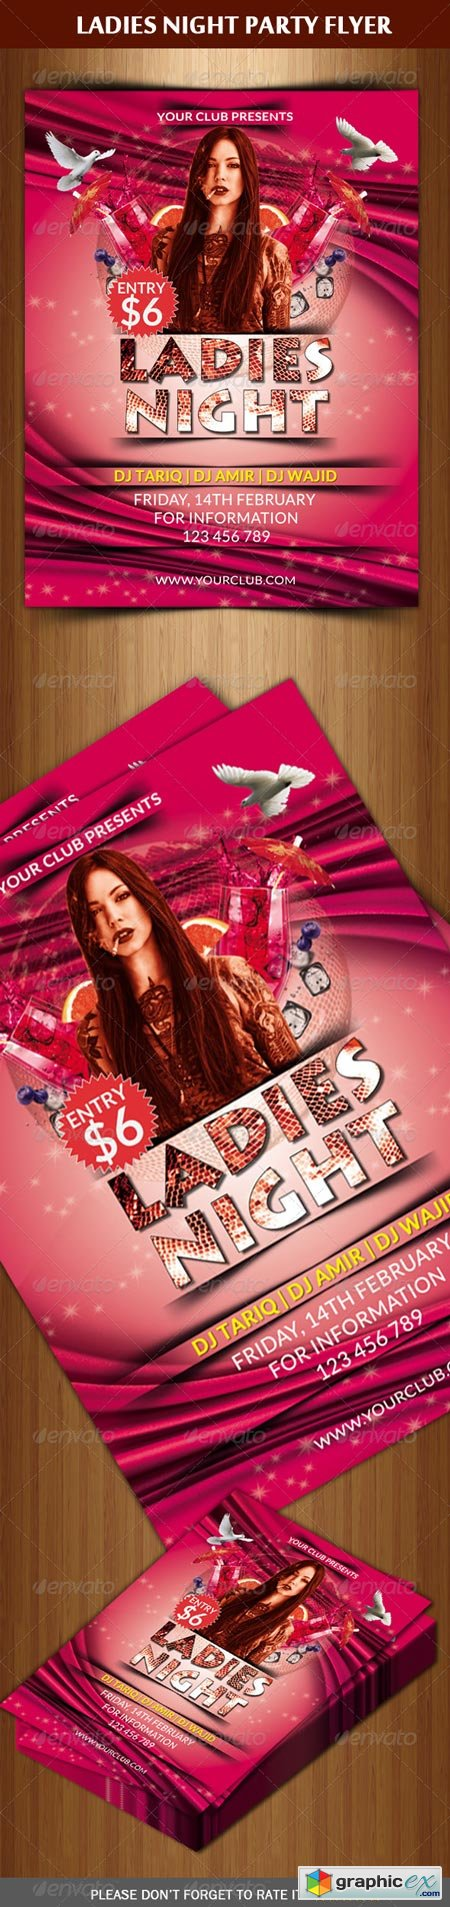 Ladies Night Flyer Template 6559897